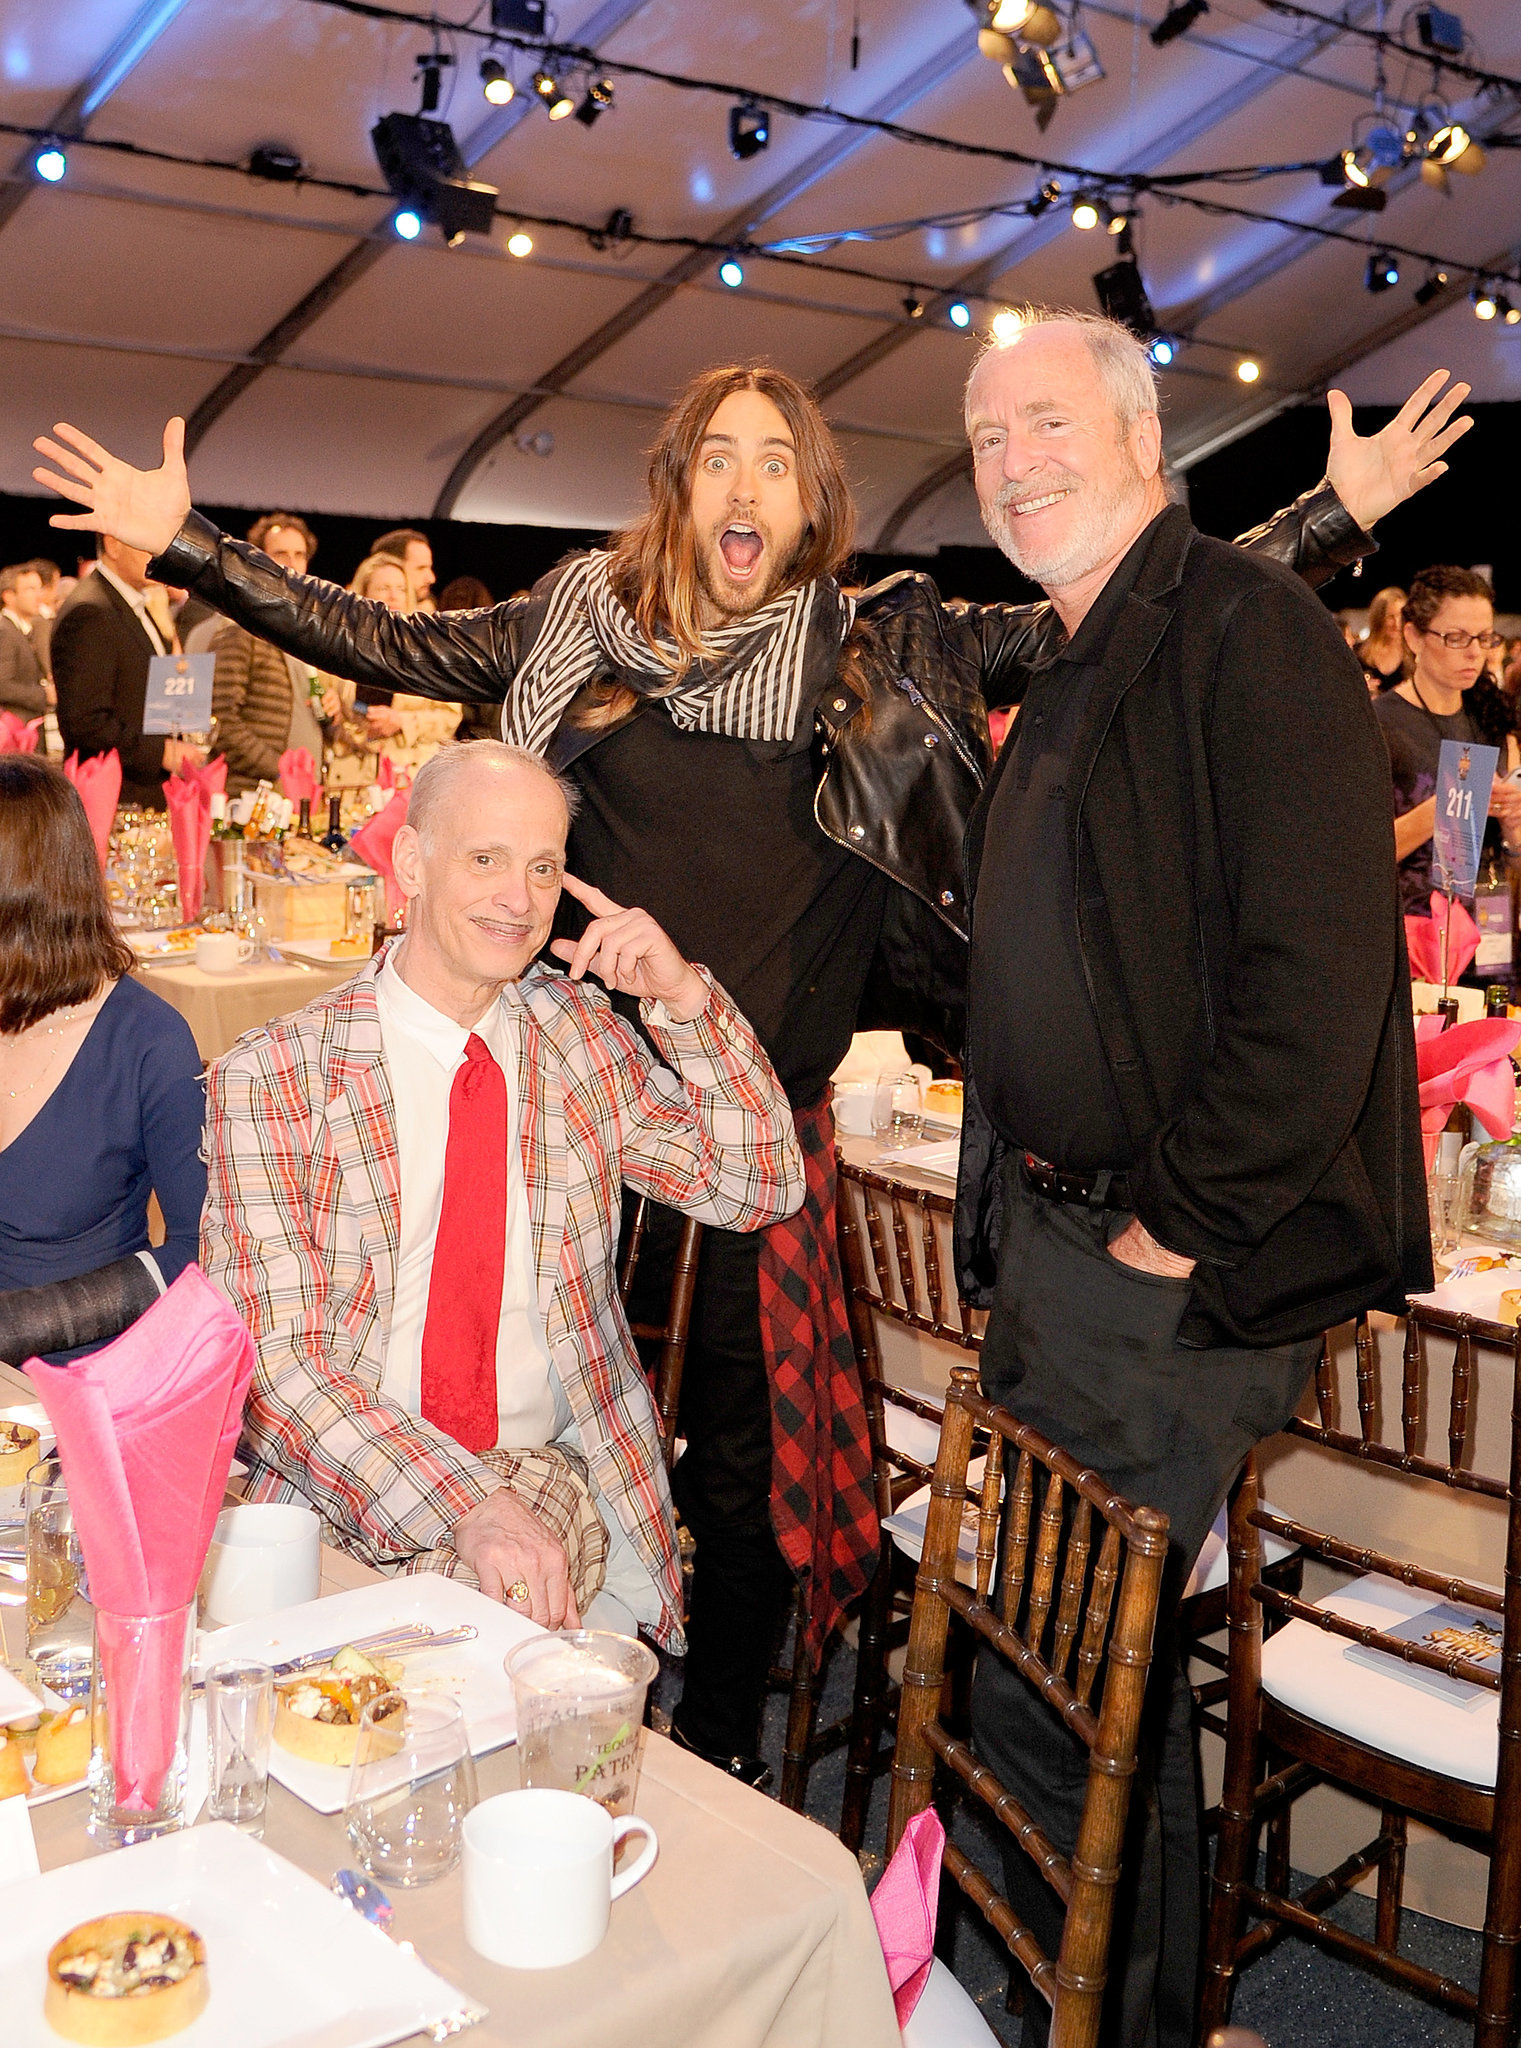 Jared Leto couldn't contain his excitement around John Waters and Greg Gorman.